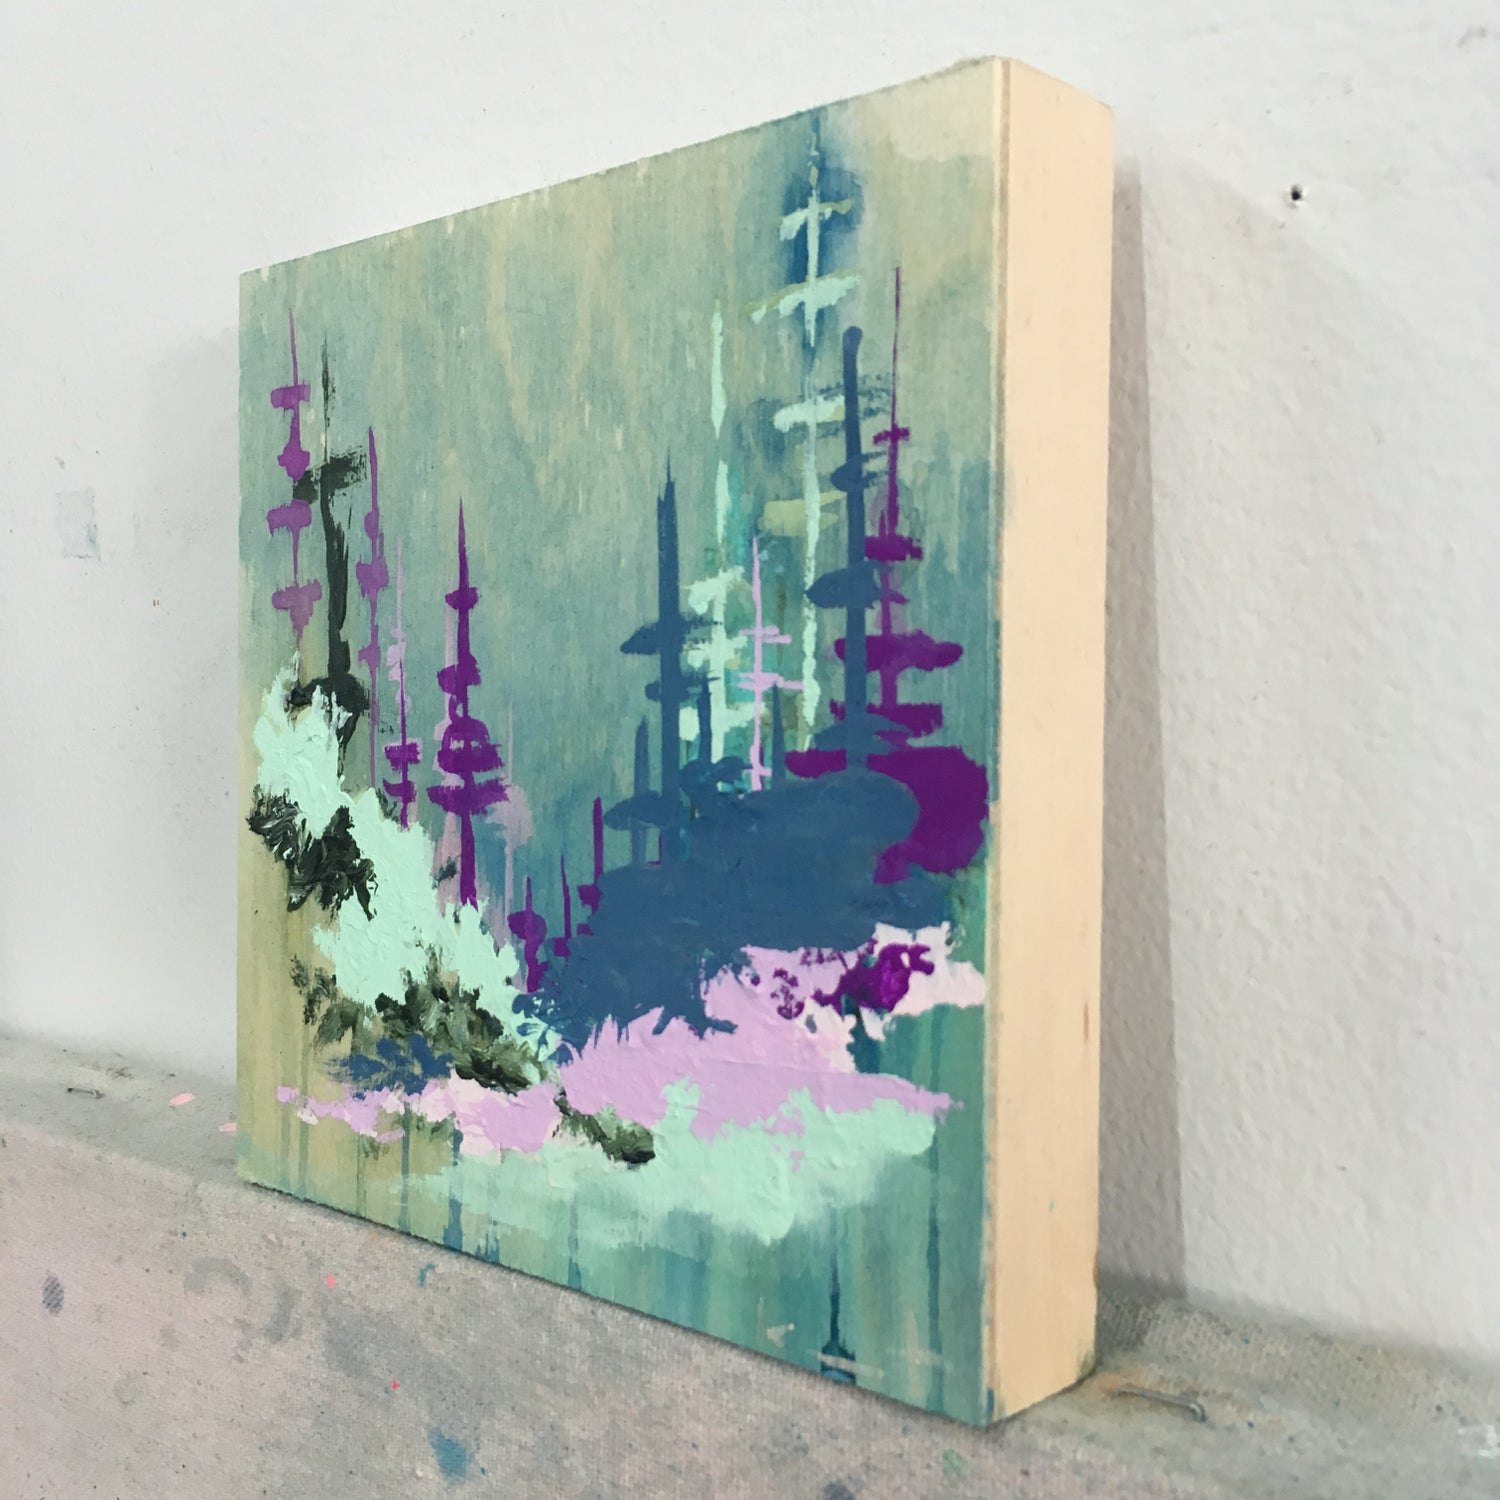 Image of tiny painting no. 48 (mint, prussian, lilac)